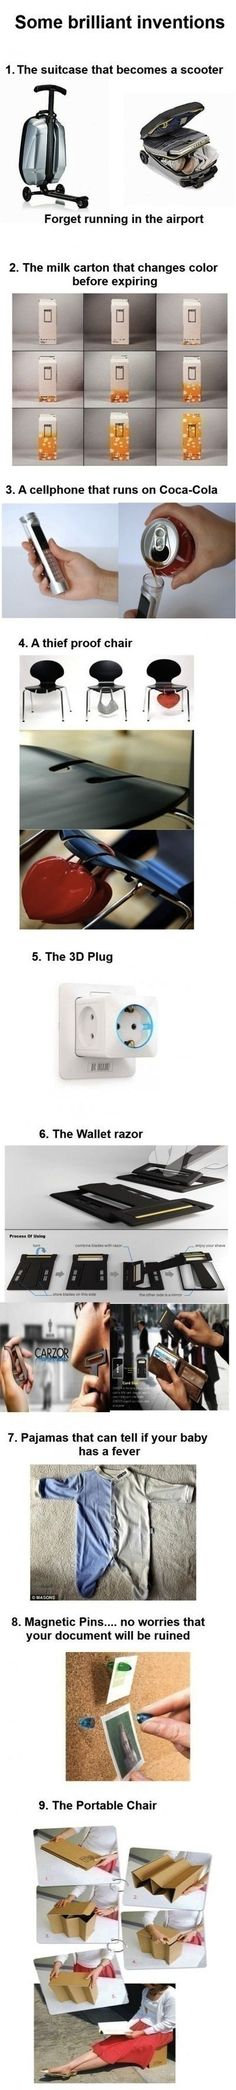 Some brilliant inventions / shut up and take my money :: compilation :: funny pictures :: photo :: invention Weird Inventions, Amazing Inventions, Creative Inventions, Take My Money, Cool Tech, Deco Design, Shut Up, Looks Cool, Cool Ideas